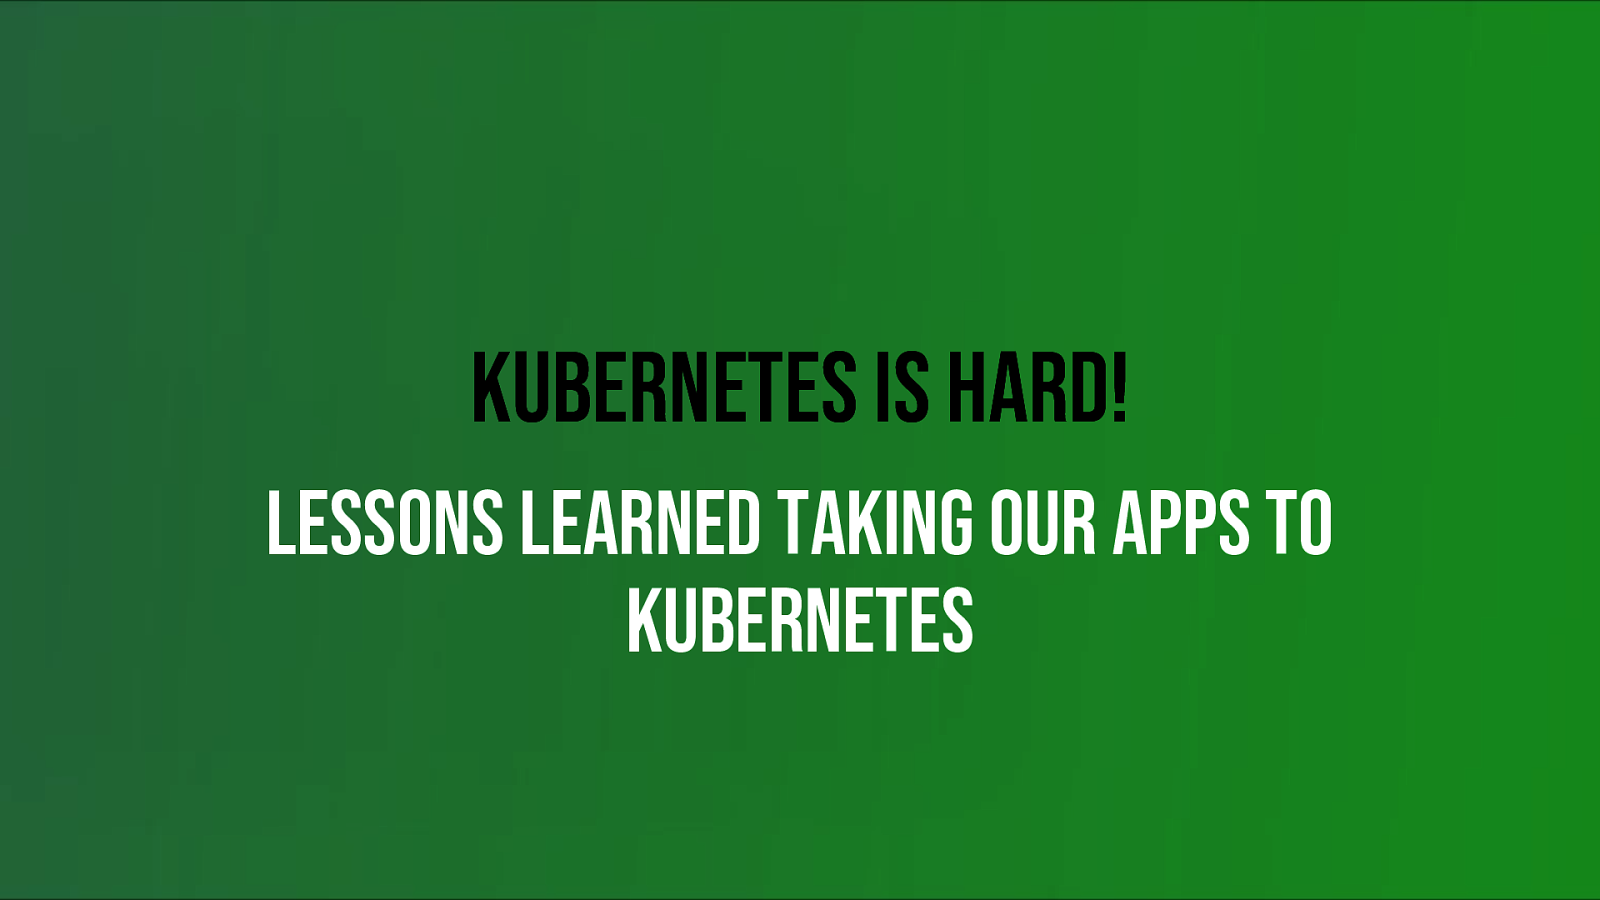 Kubernetes is hard! Lessons learned taking our apps to Kubernetes